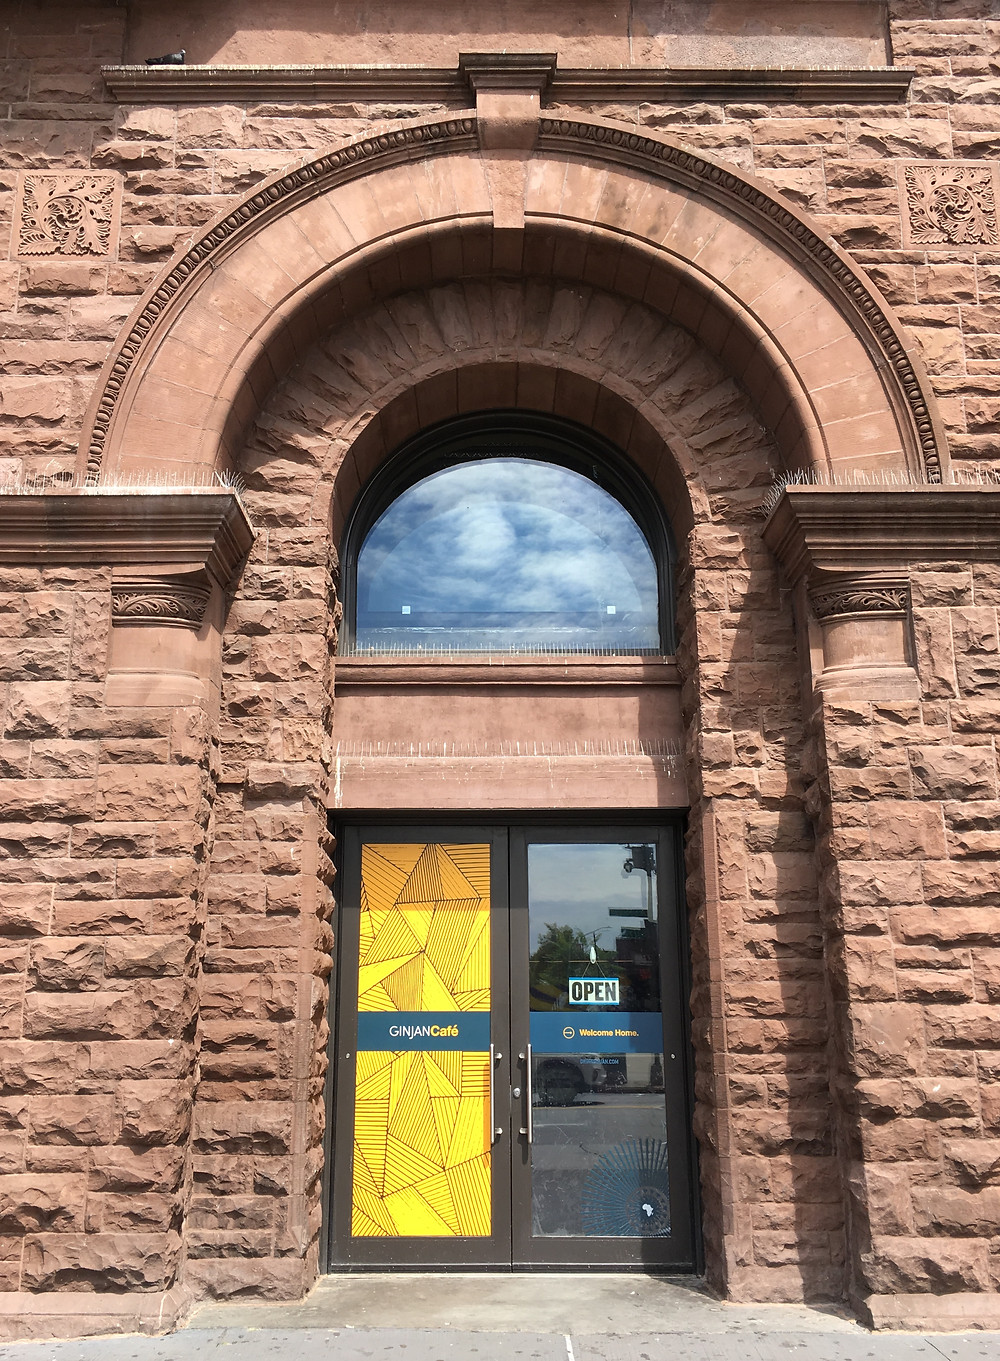 The Ginjan Cafe is a bright new spot in the historic Corn Exchange Building on East 125th Street